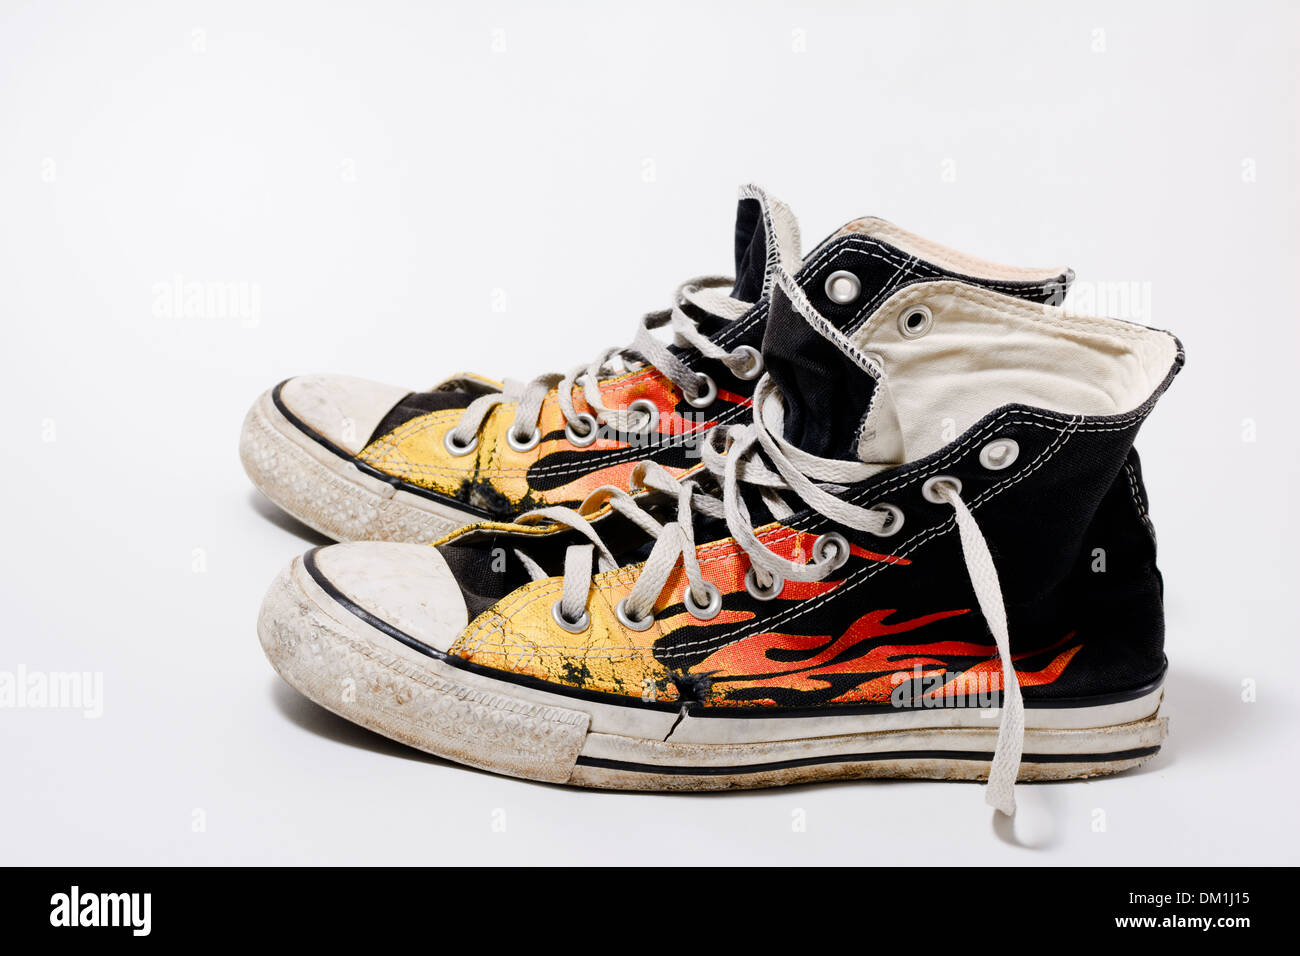 Images Photosamp; Alamy Converse All Star 80wNvnymO